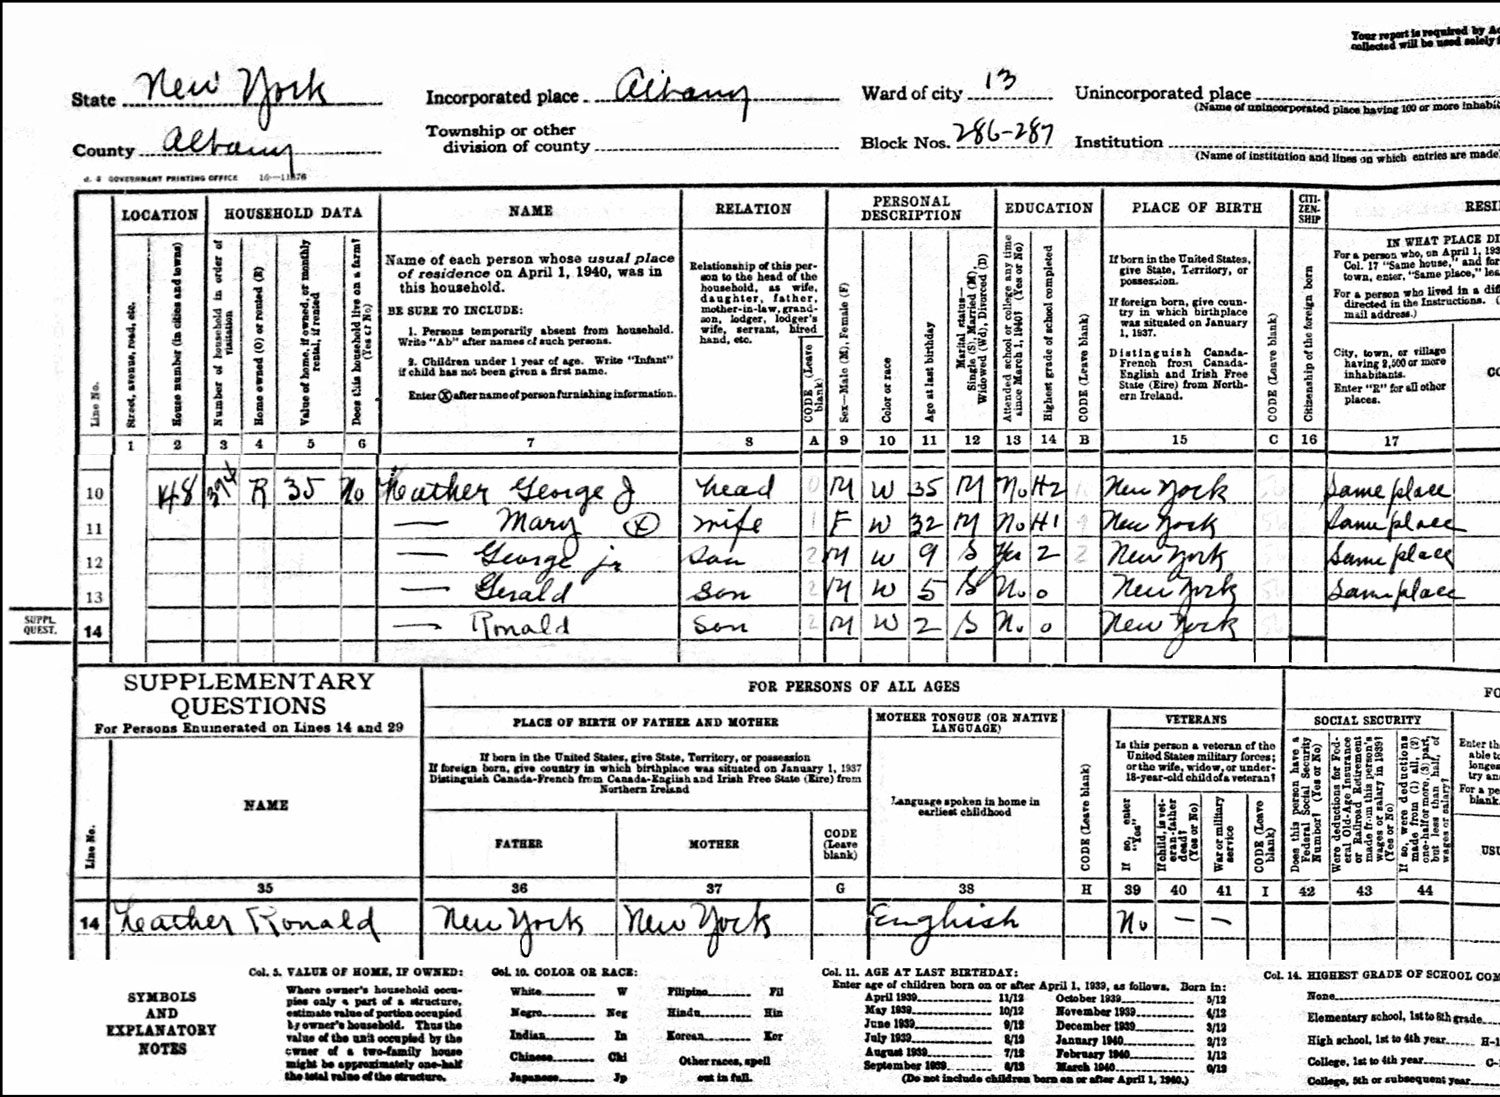 1940 US Federal Census Record for the George Lather Household (Left)